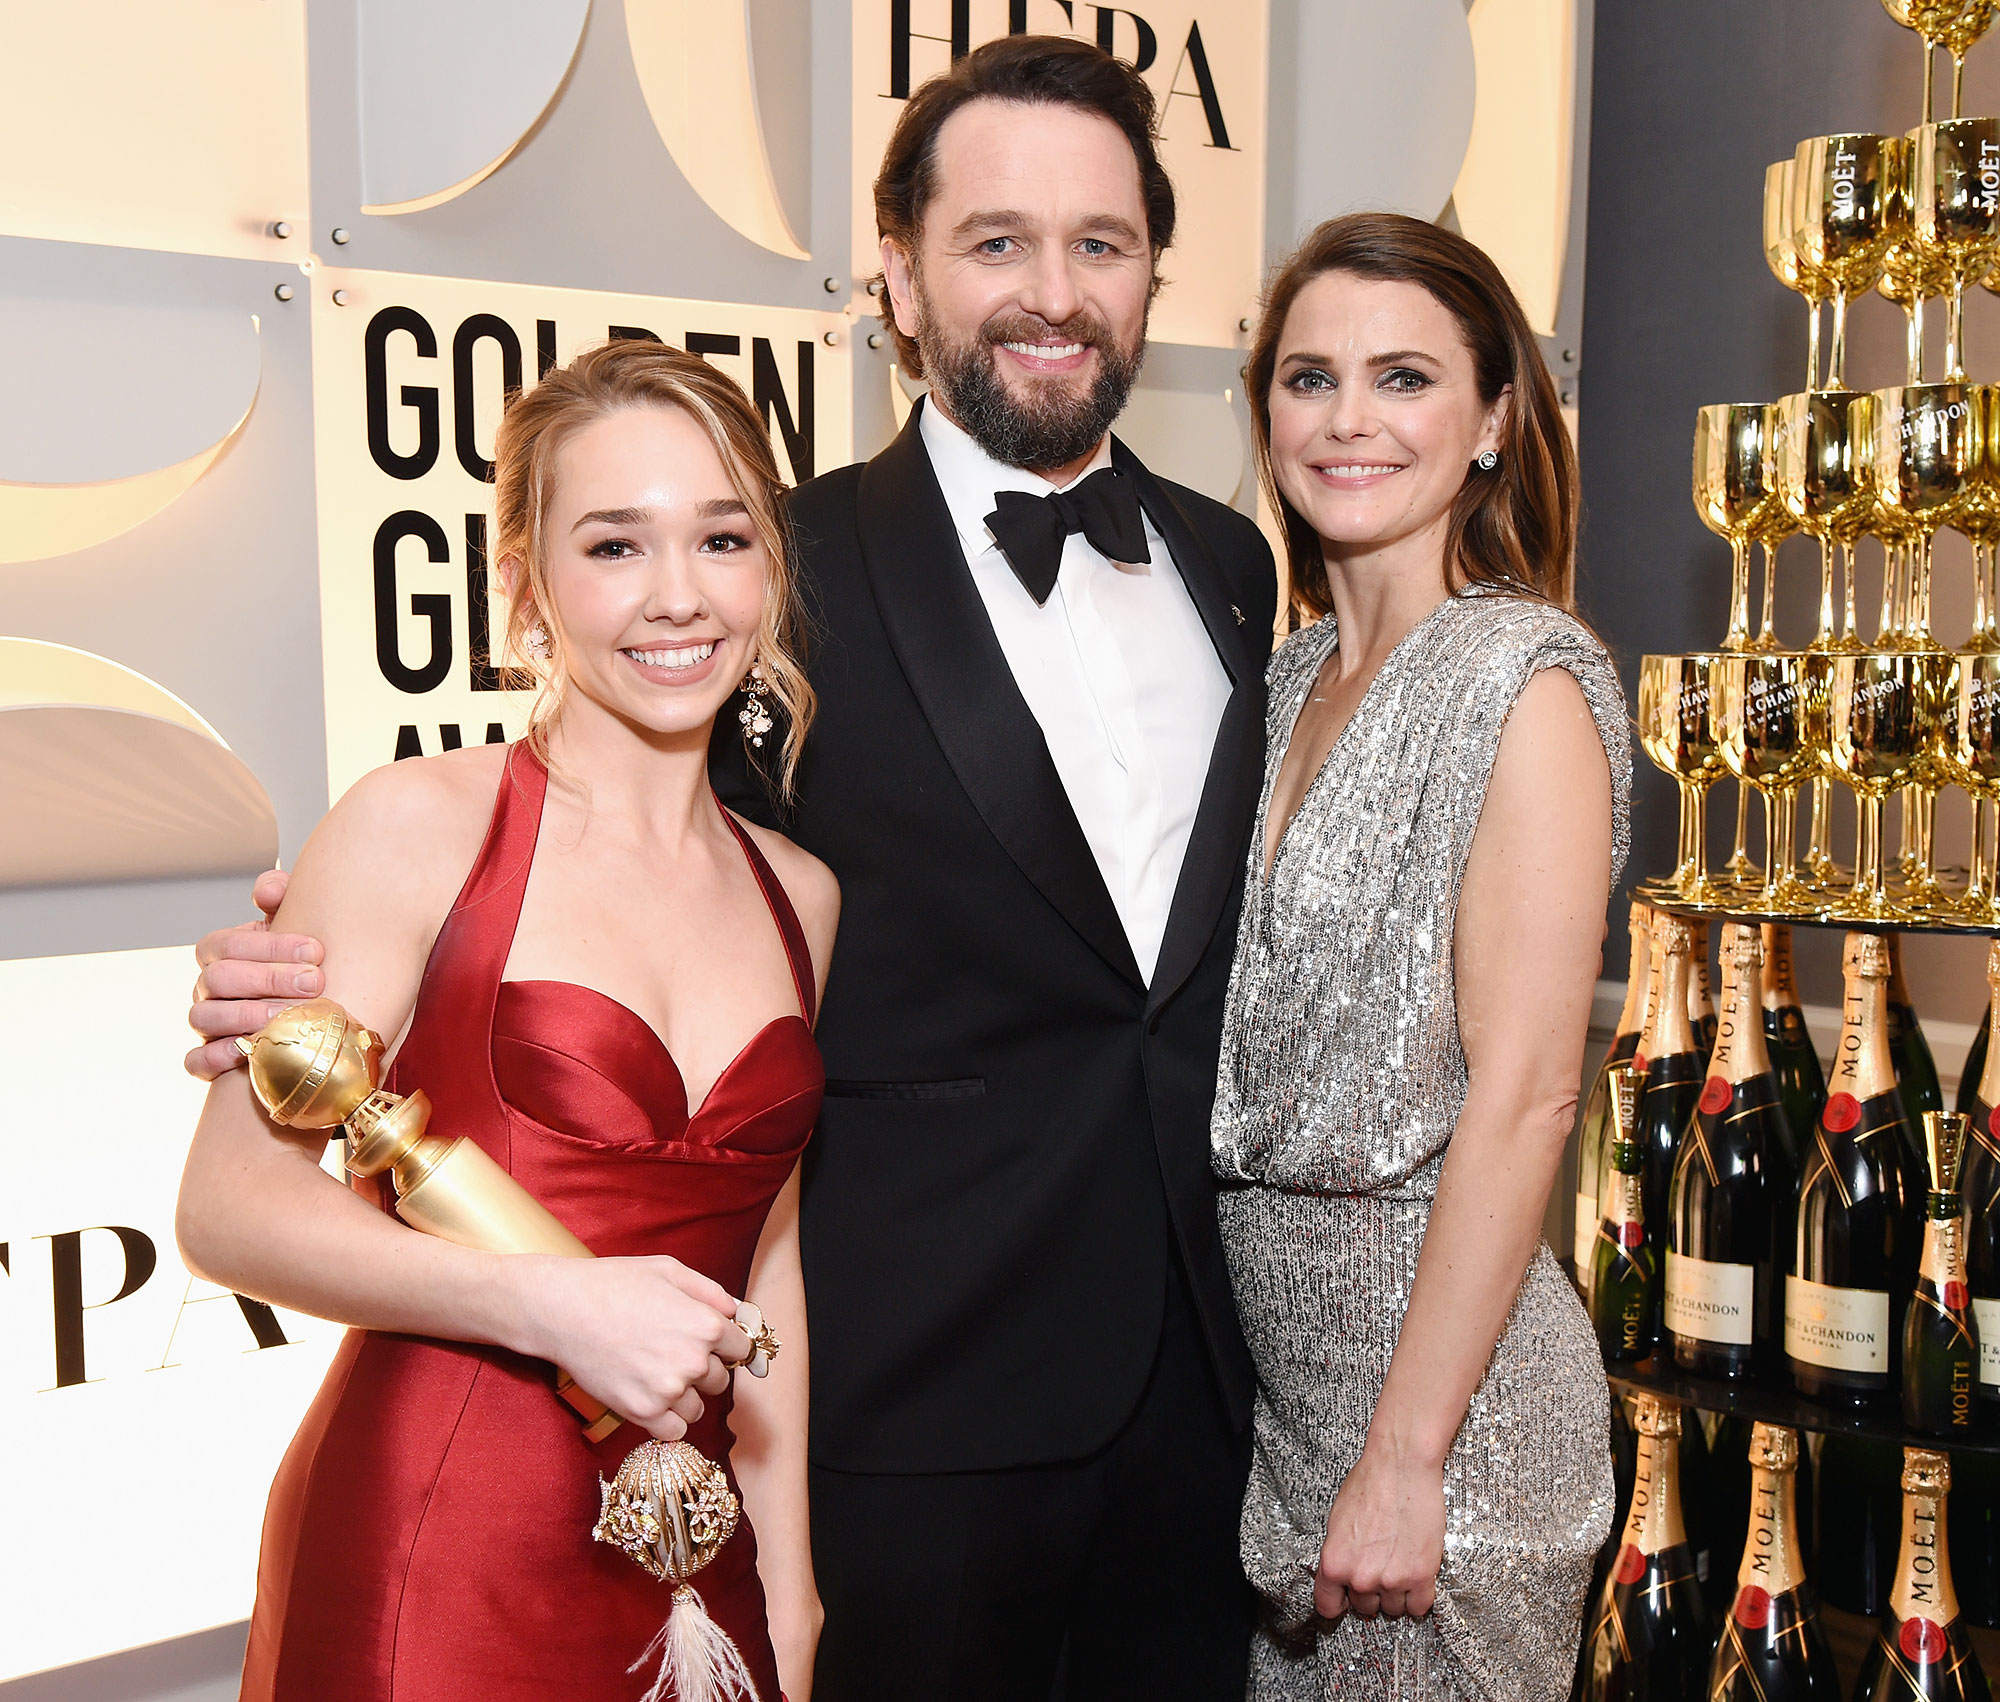 Inside Golden Globes 2019 Holly Taylor Matthew Rhys Keri Russell - The Americans star Holly Taylor and her onscreen parents, Matthew Rhys and Keri Russell , had a sweet backstage reunion.